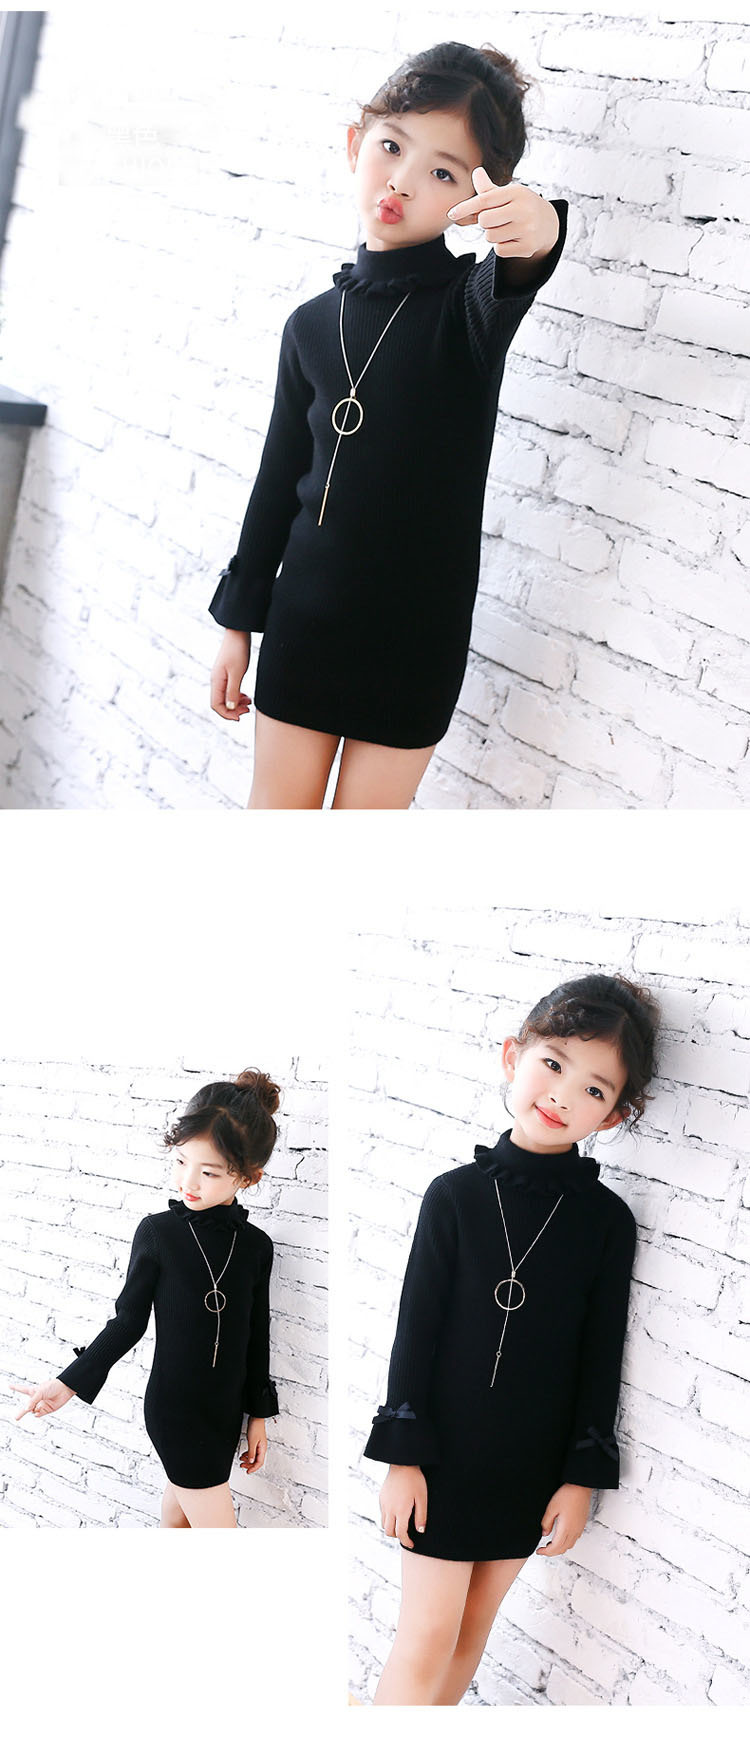 high neck knitting girls sweater dress kids clothes long sleeve knitted red black white autumn winter kids sweater knit tops 5 6 7 8 9 10 11 12 13 14 15 16 years little teenage big girls white girls dresses (8)